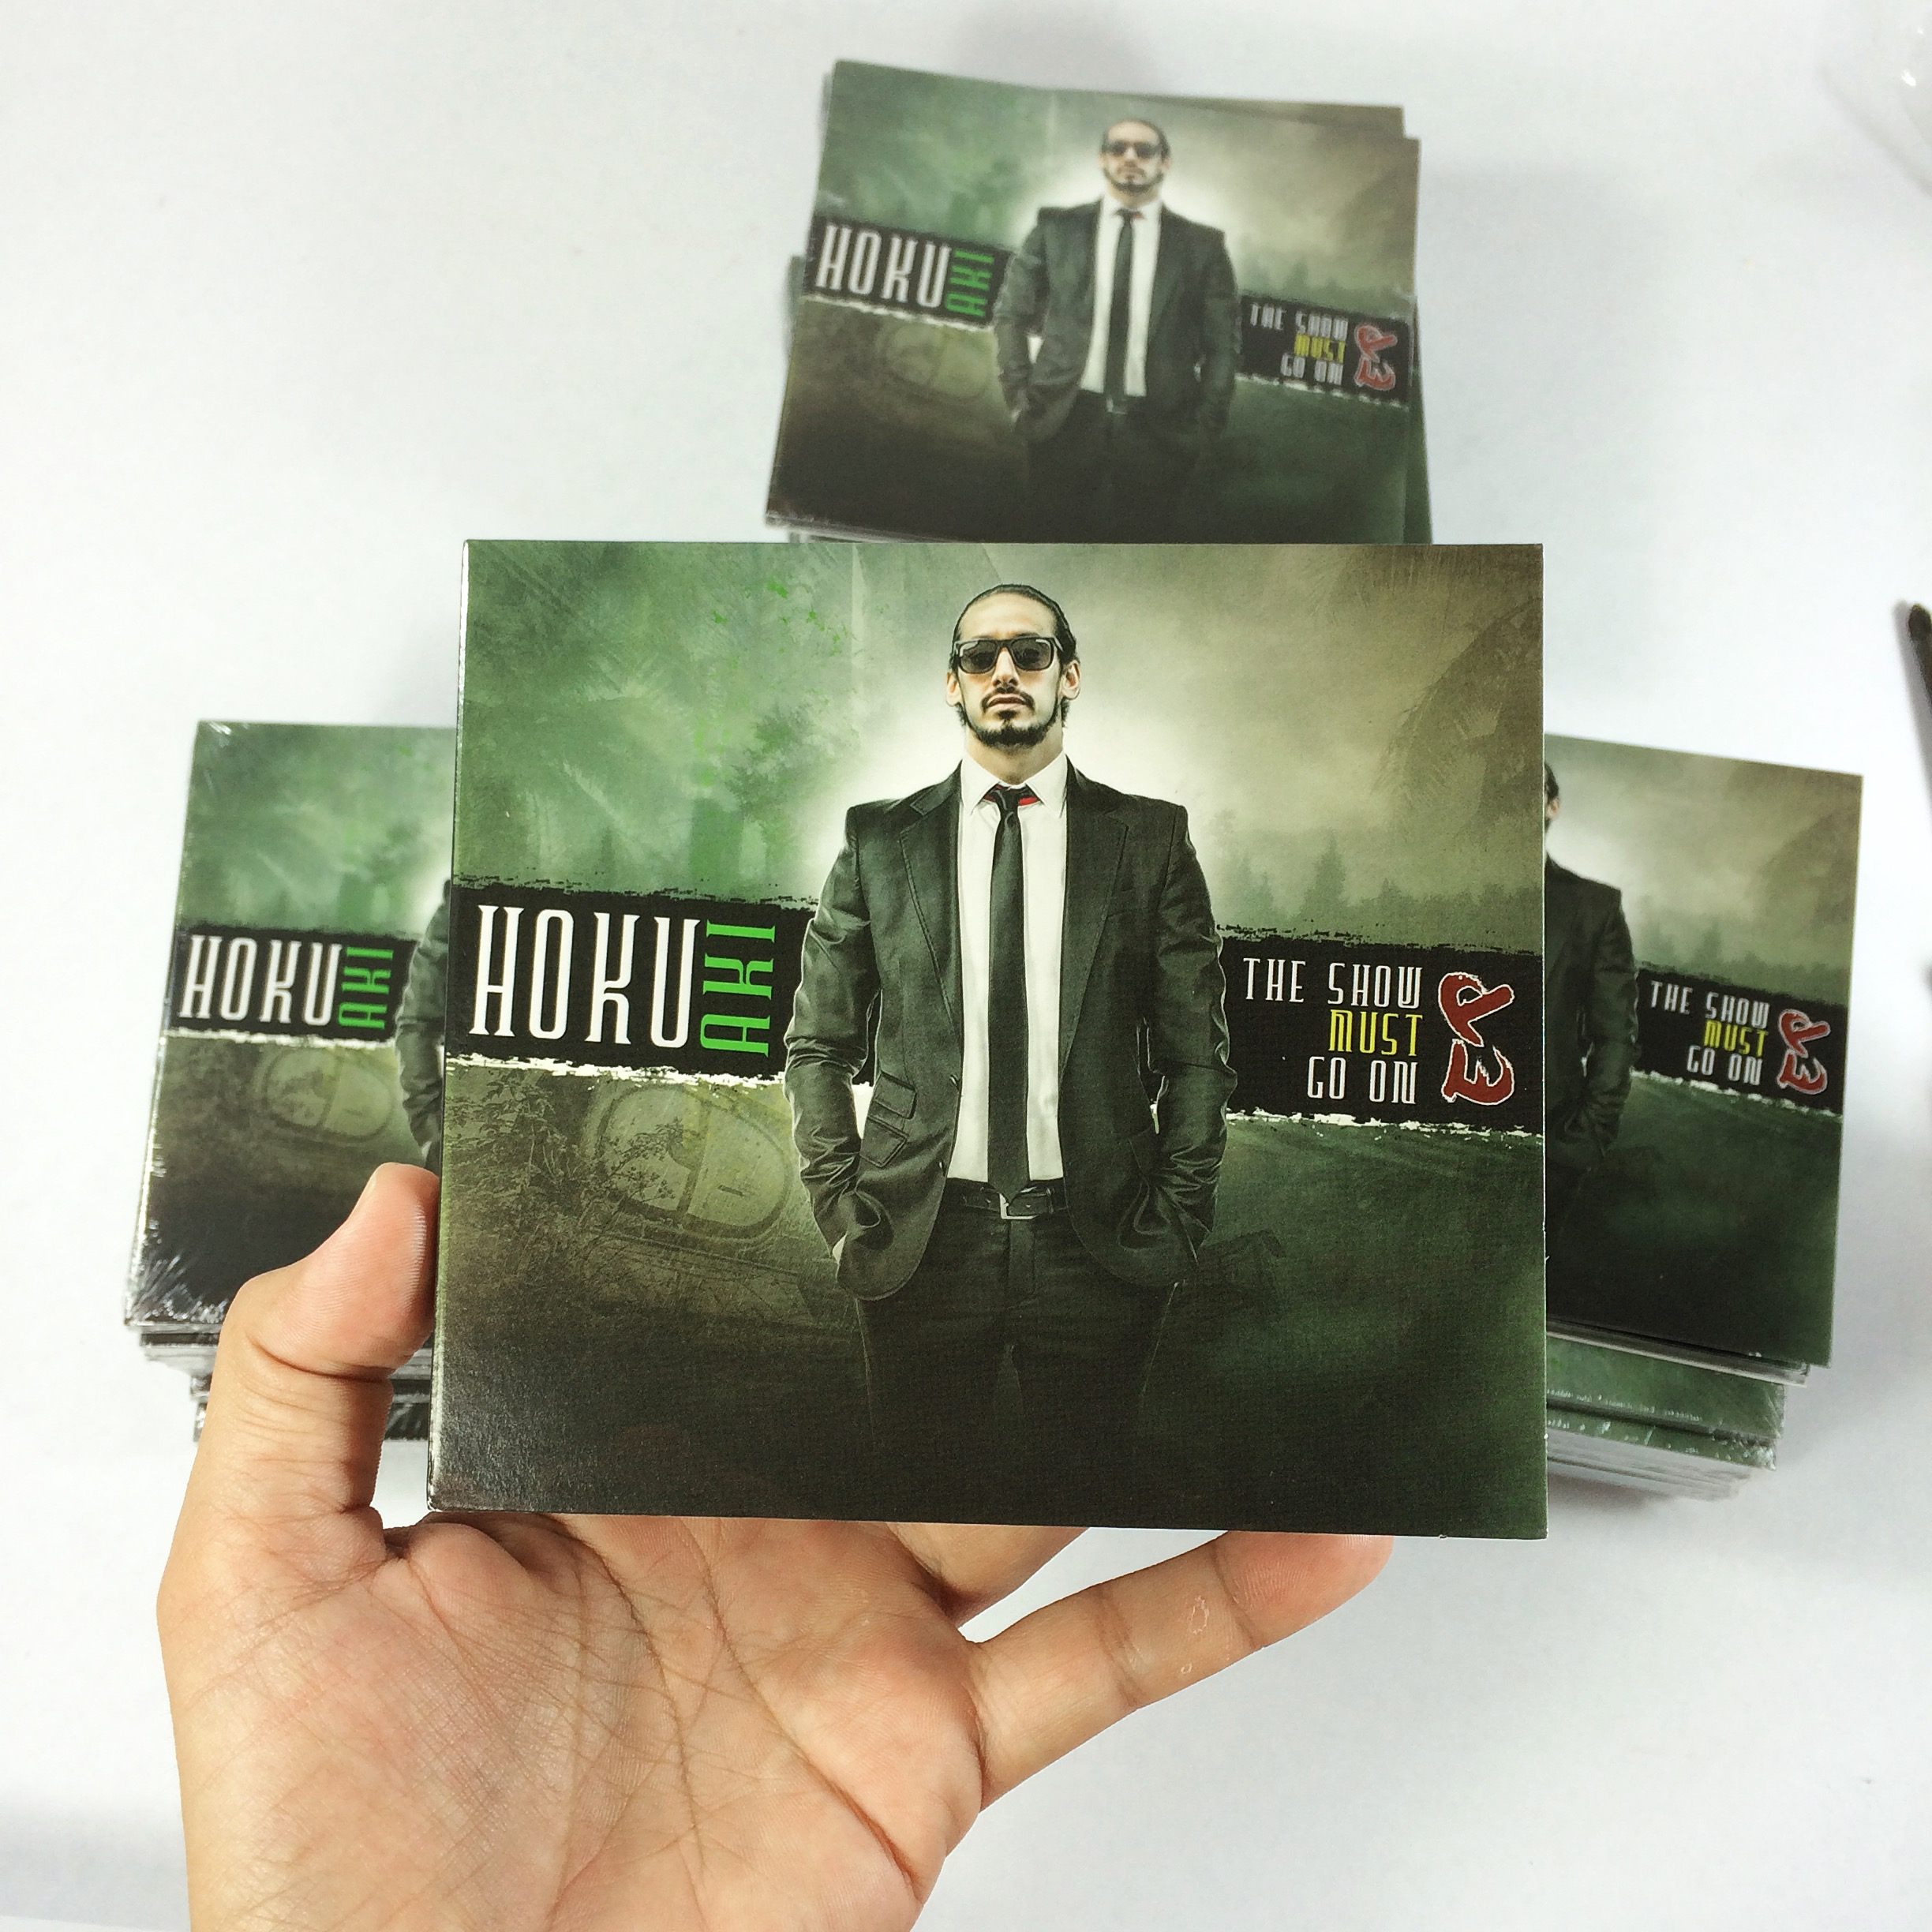 Sneak peak of @hokuaki new album! We will have this for sale soon..very, very, very soon 🕴🎤